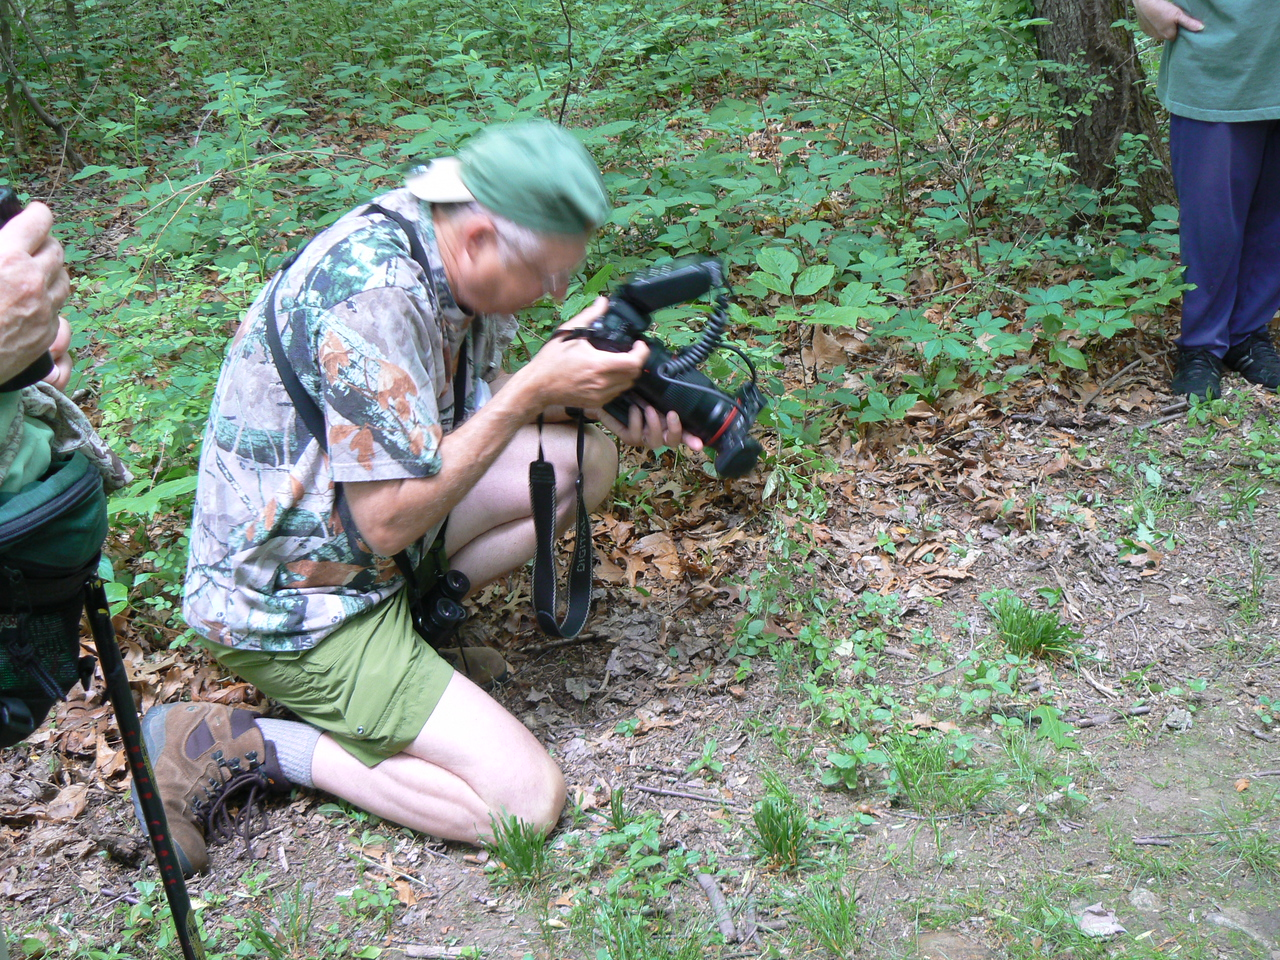 Grey tree frog (in lower right) being photographed by a more dedicated photographer.